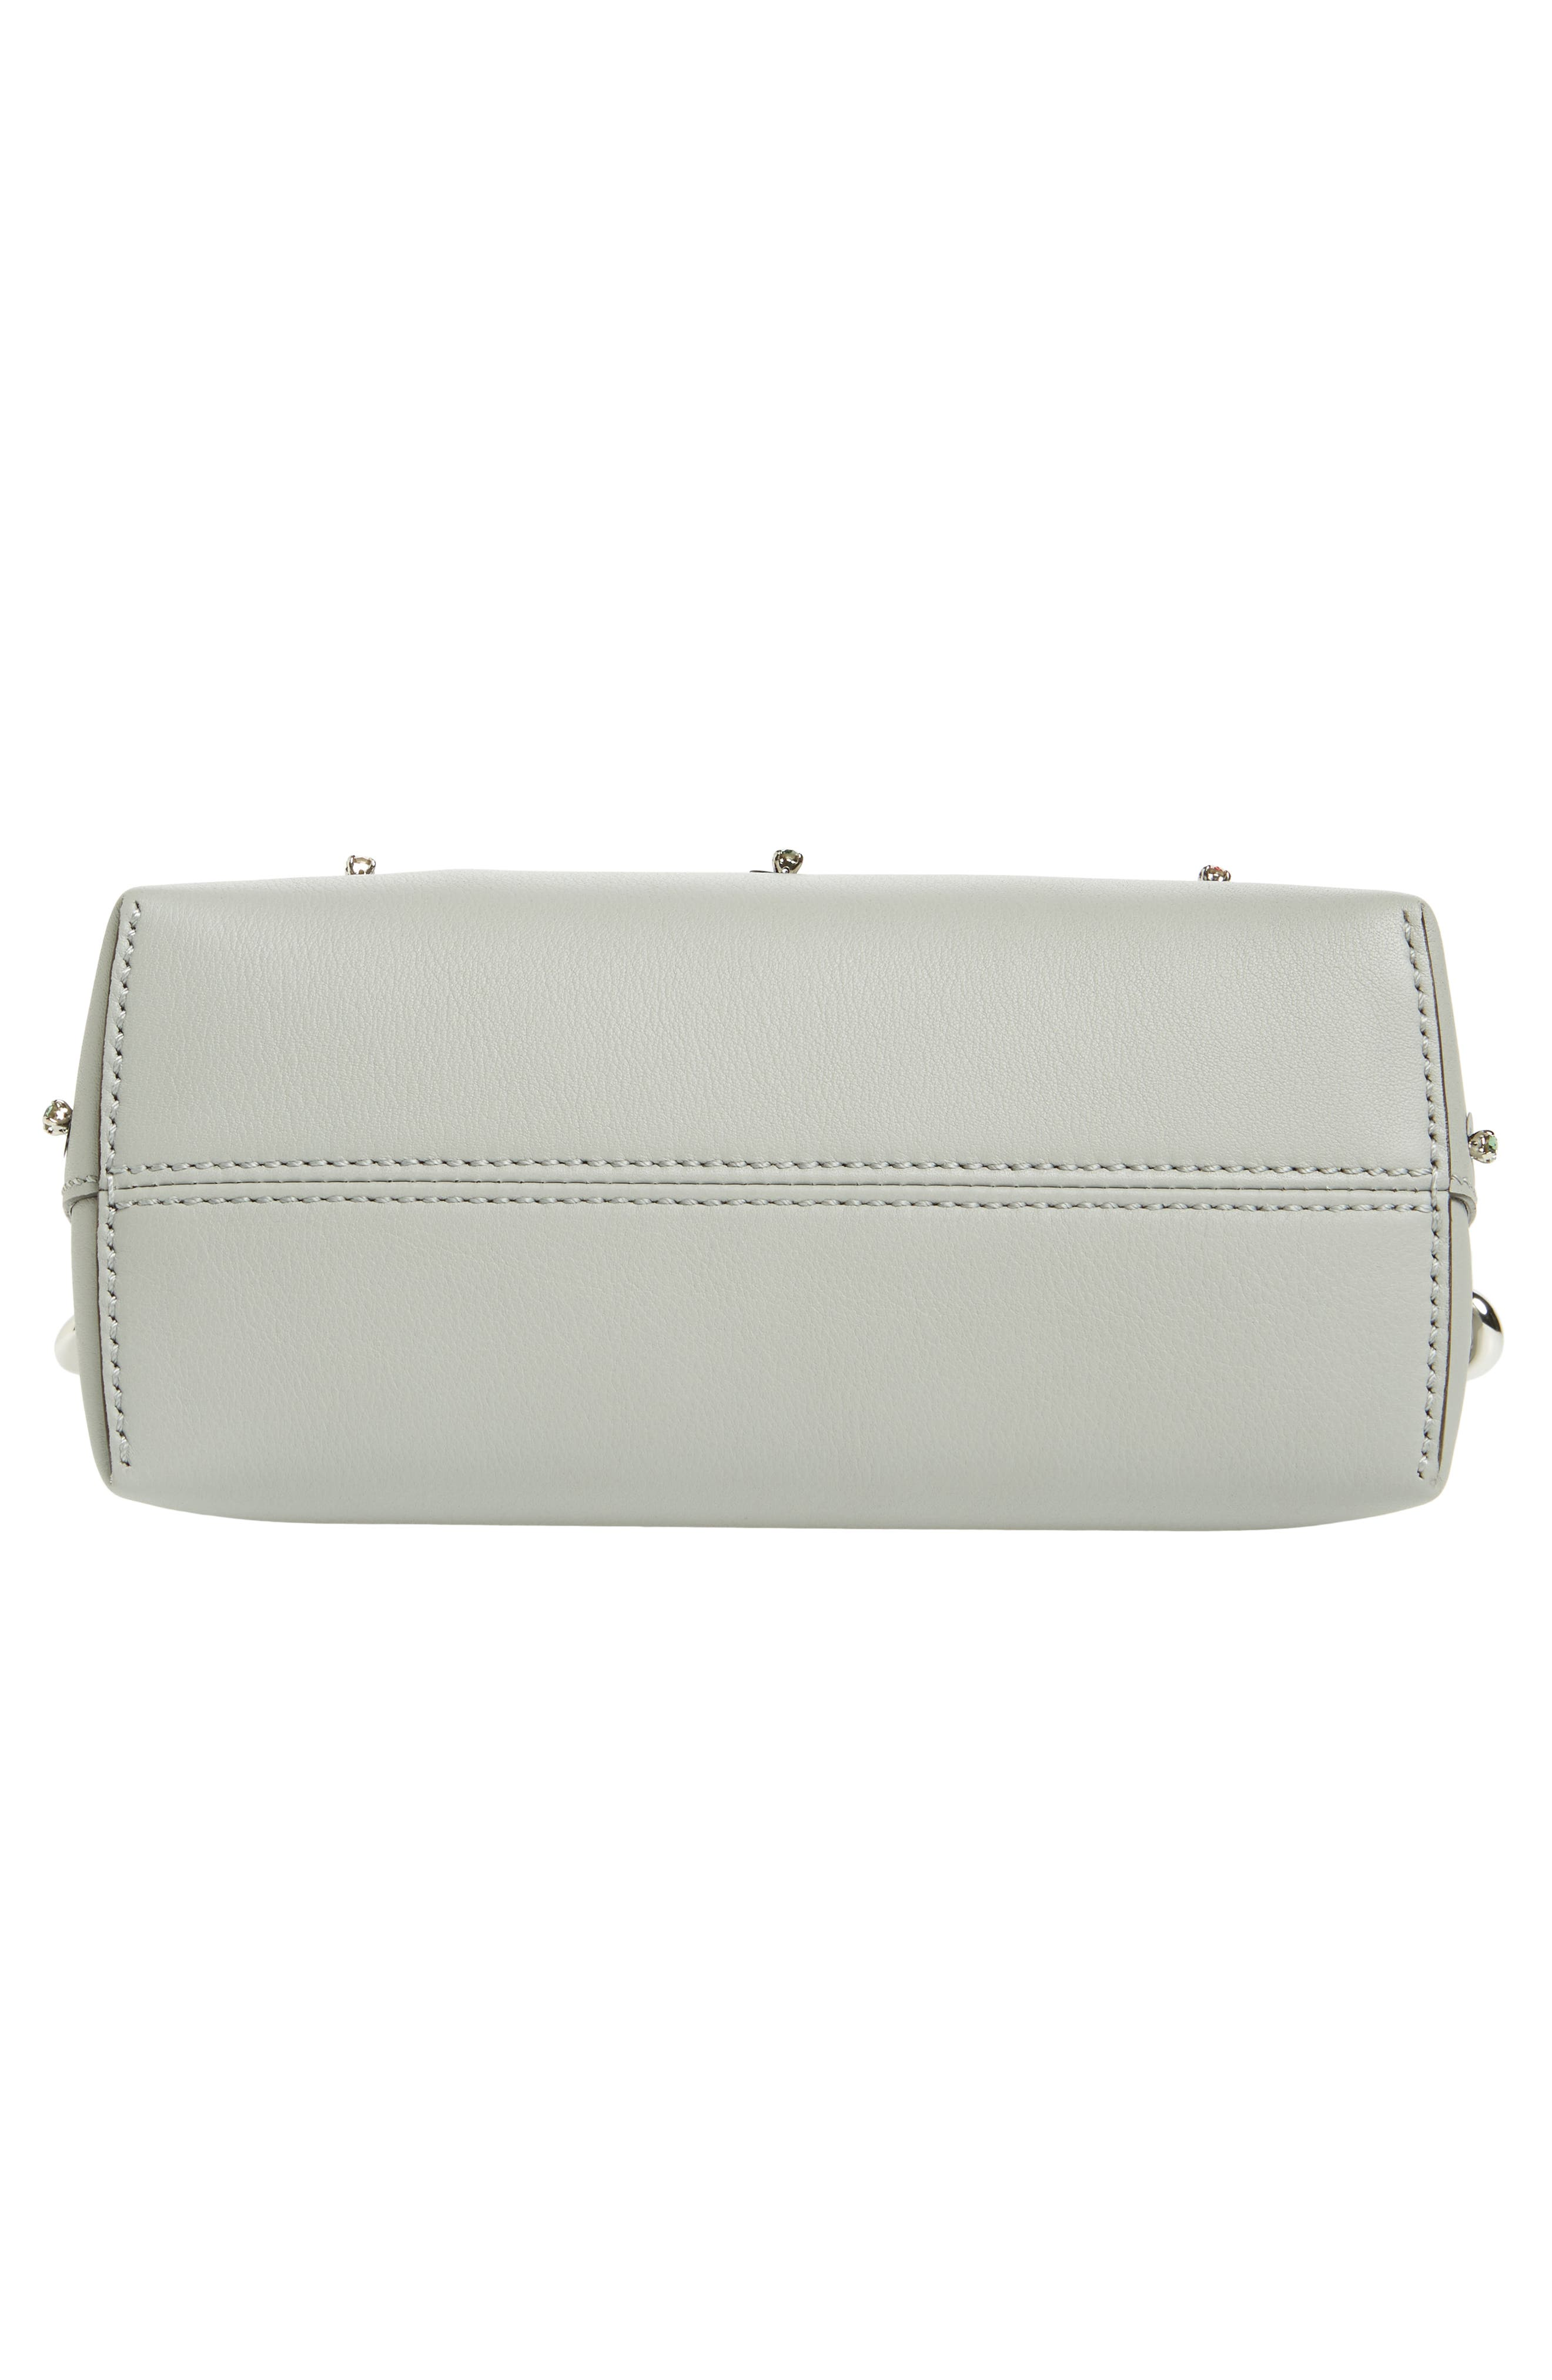 Mini By the Way Crystal Embellished Convertible Leather Crossbody Bag,                             Alternate thumbnail 6, color,                             050